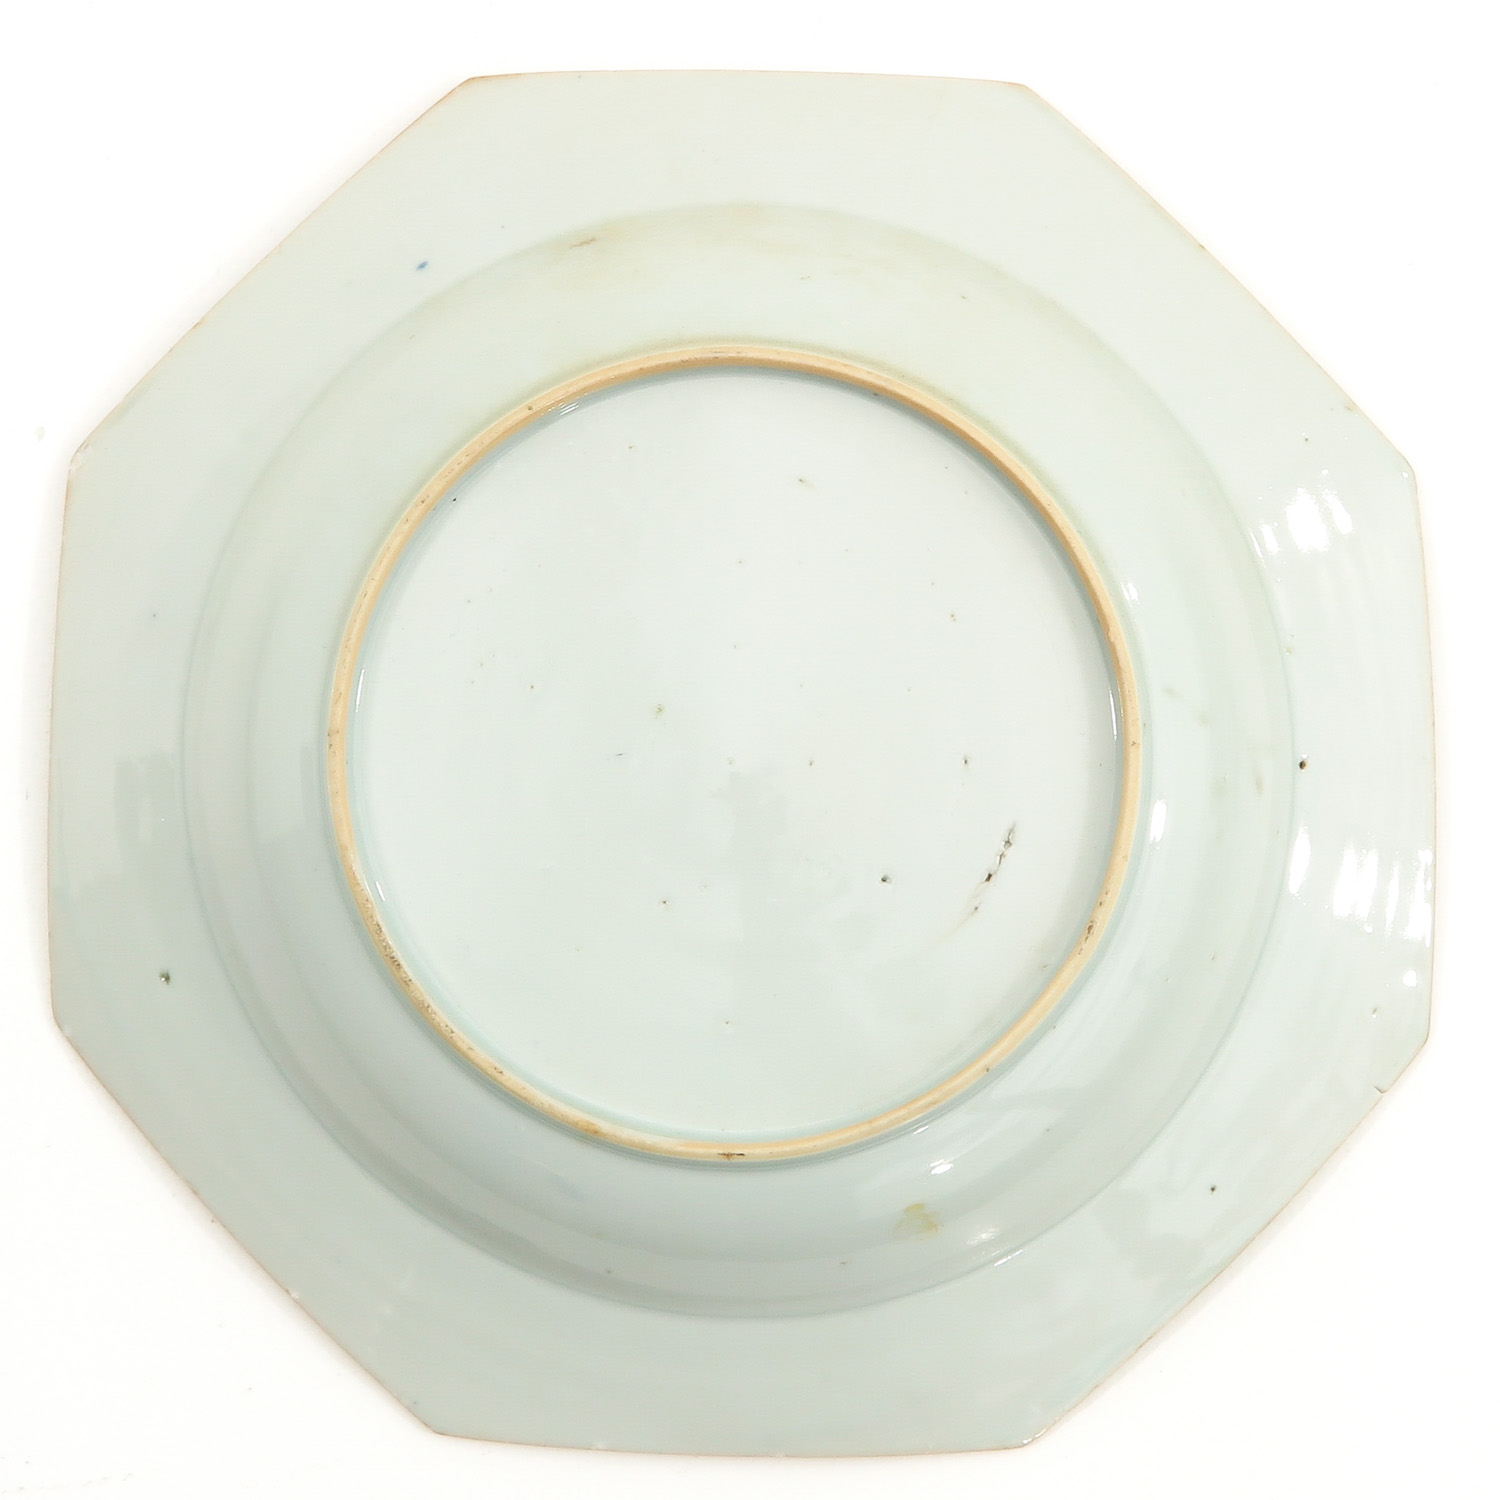 A Series of 3 Blue and White Plates - Image 4 of 10